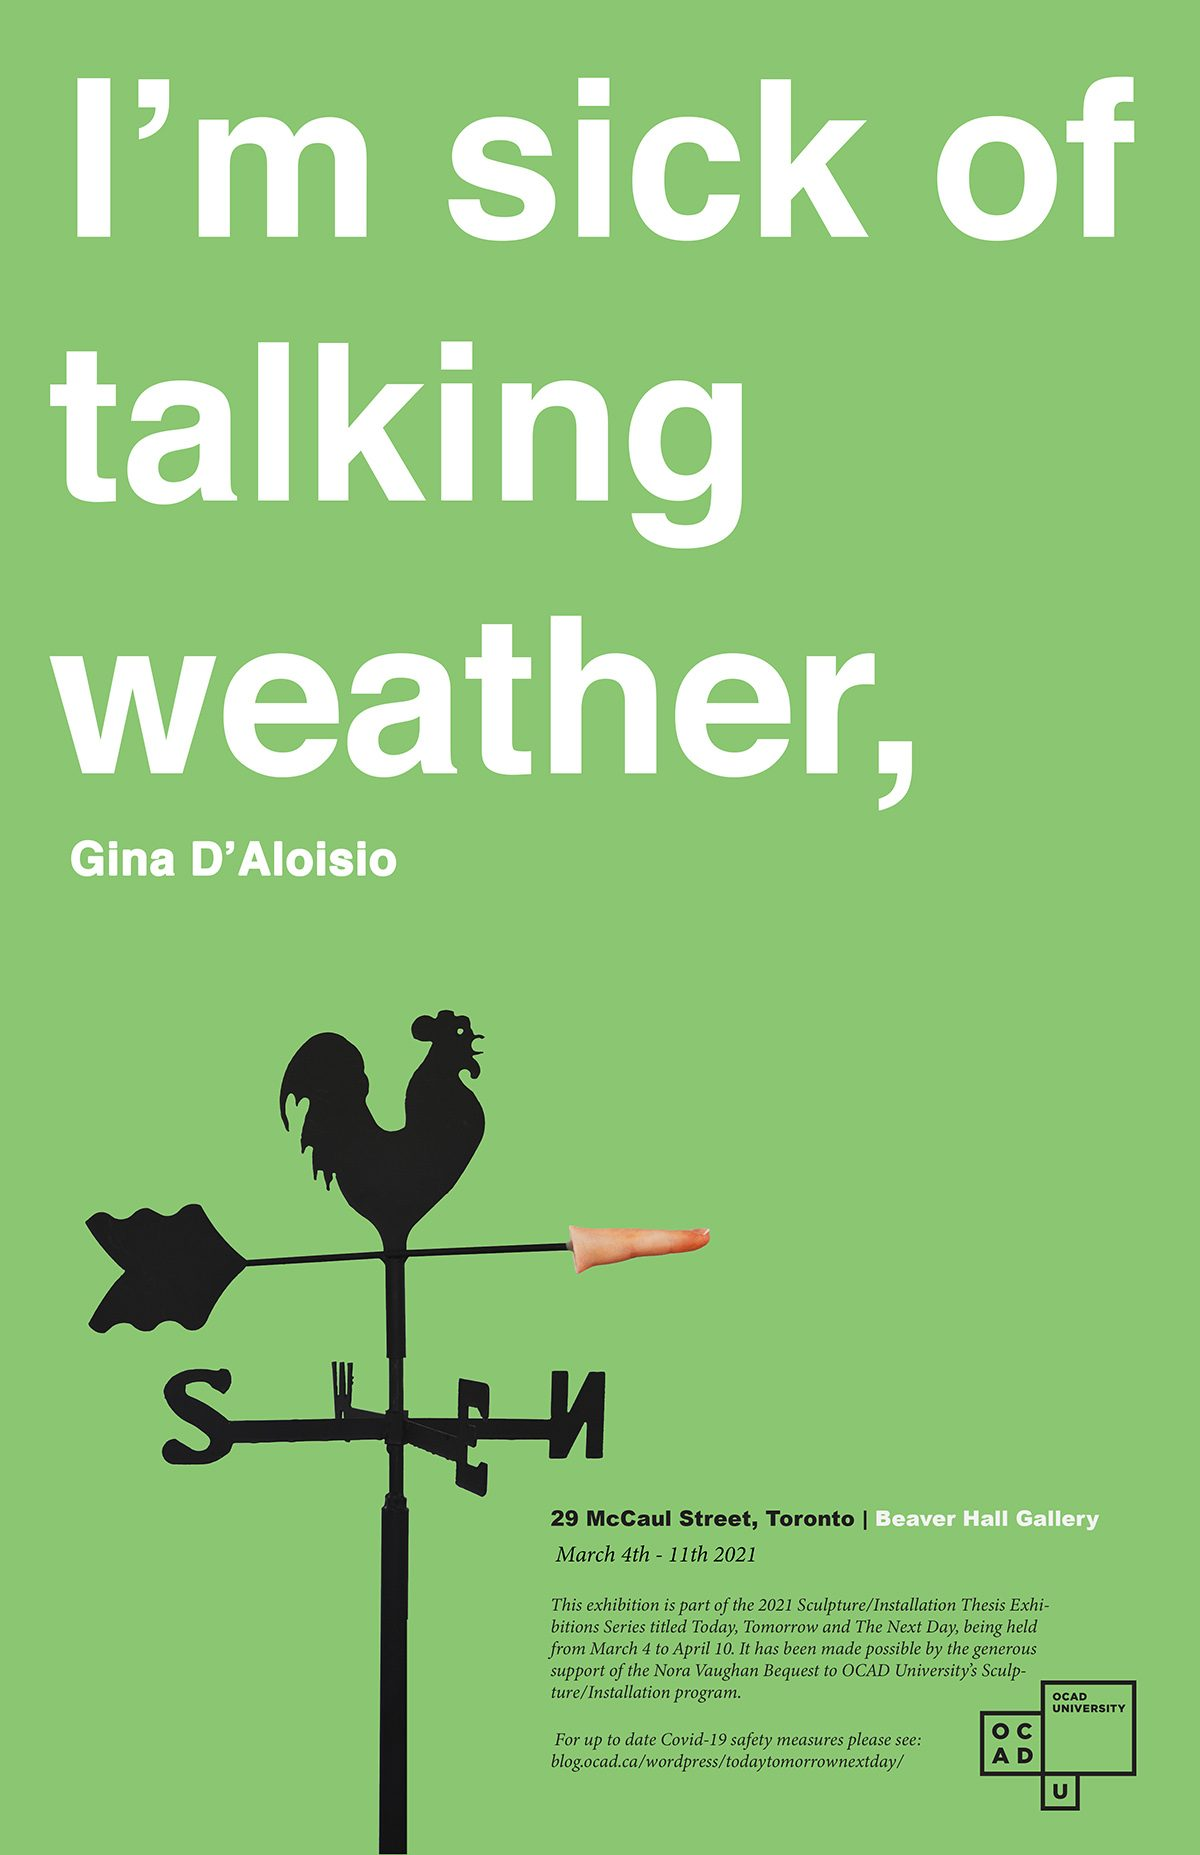 I'm sick of talking weather, : Gina D'Aloisio